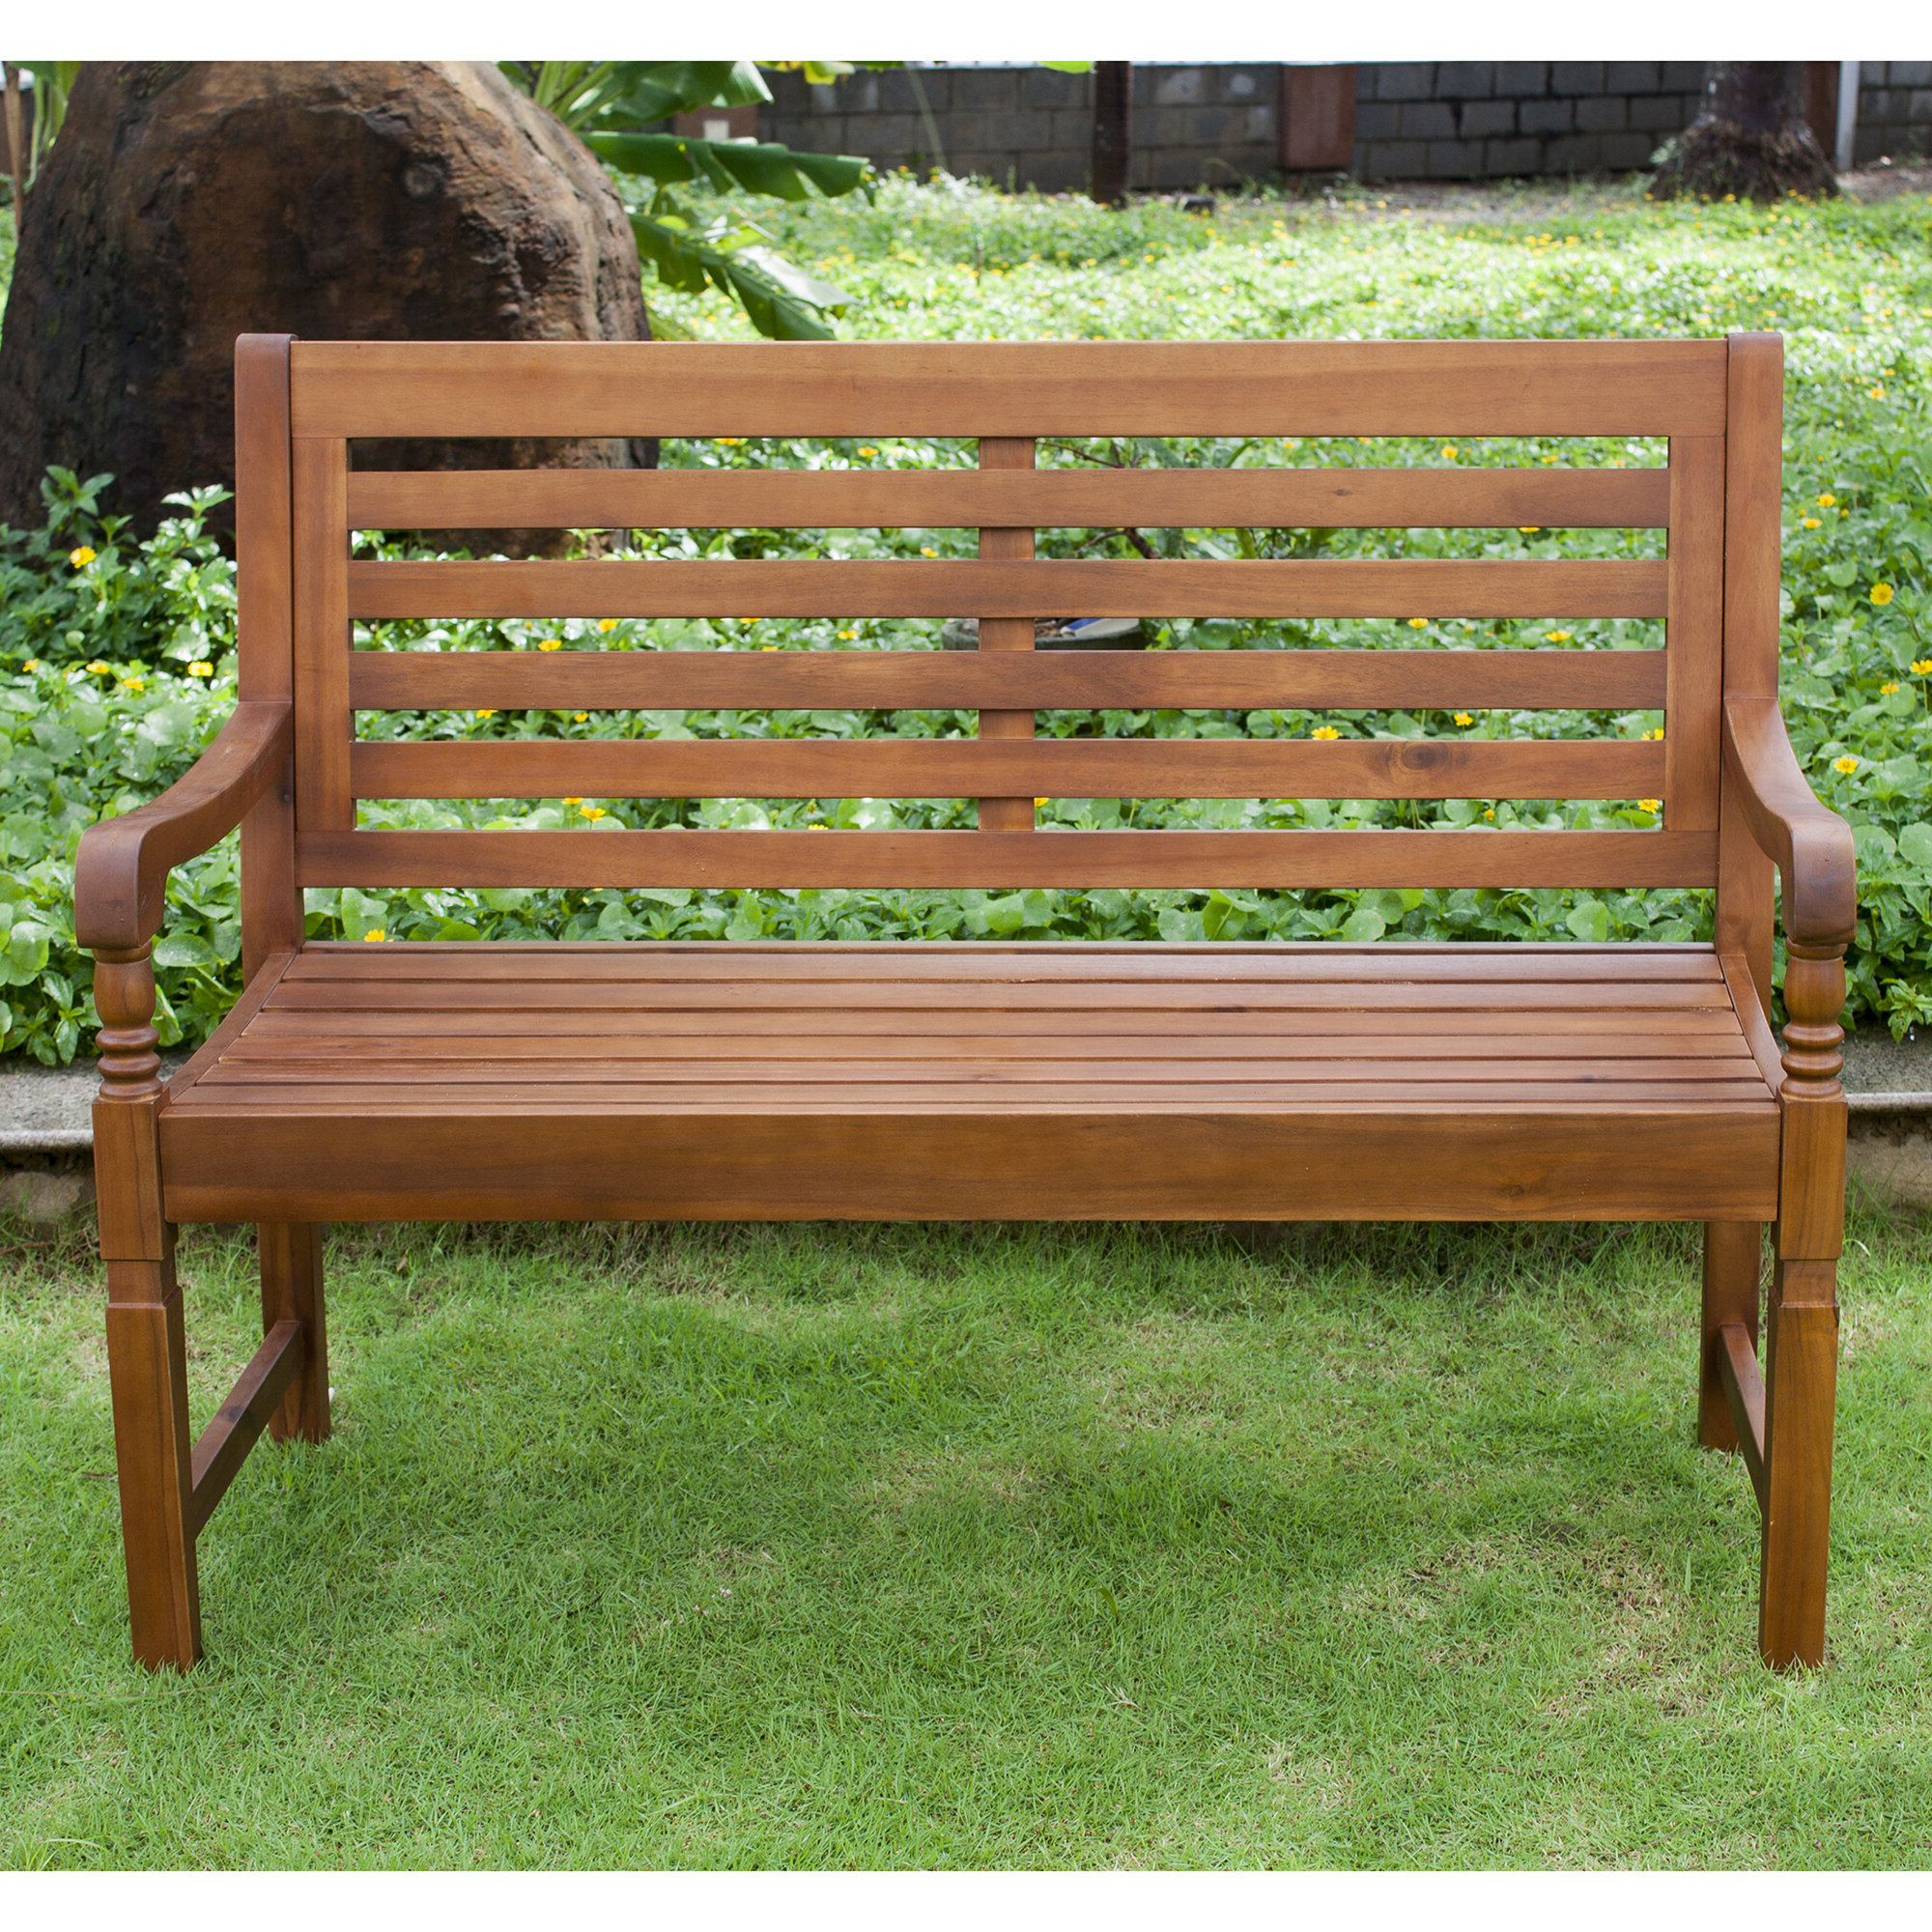 2019 Harmony Garden Bench, Natural Regarding Guyapi Garden Benches (View 4 of 30)